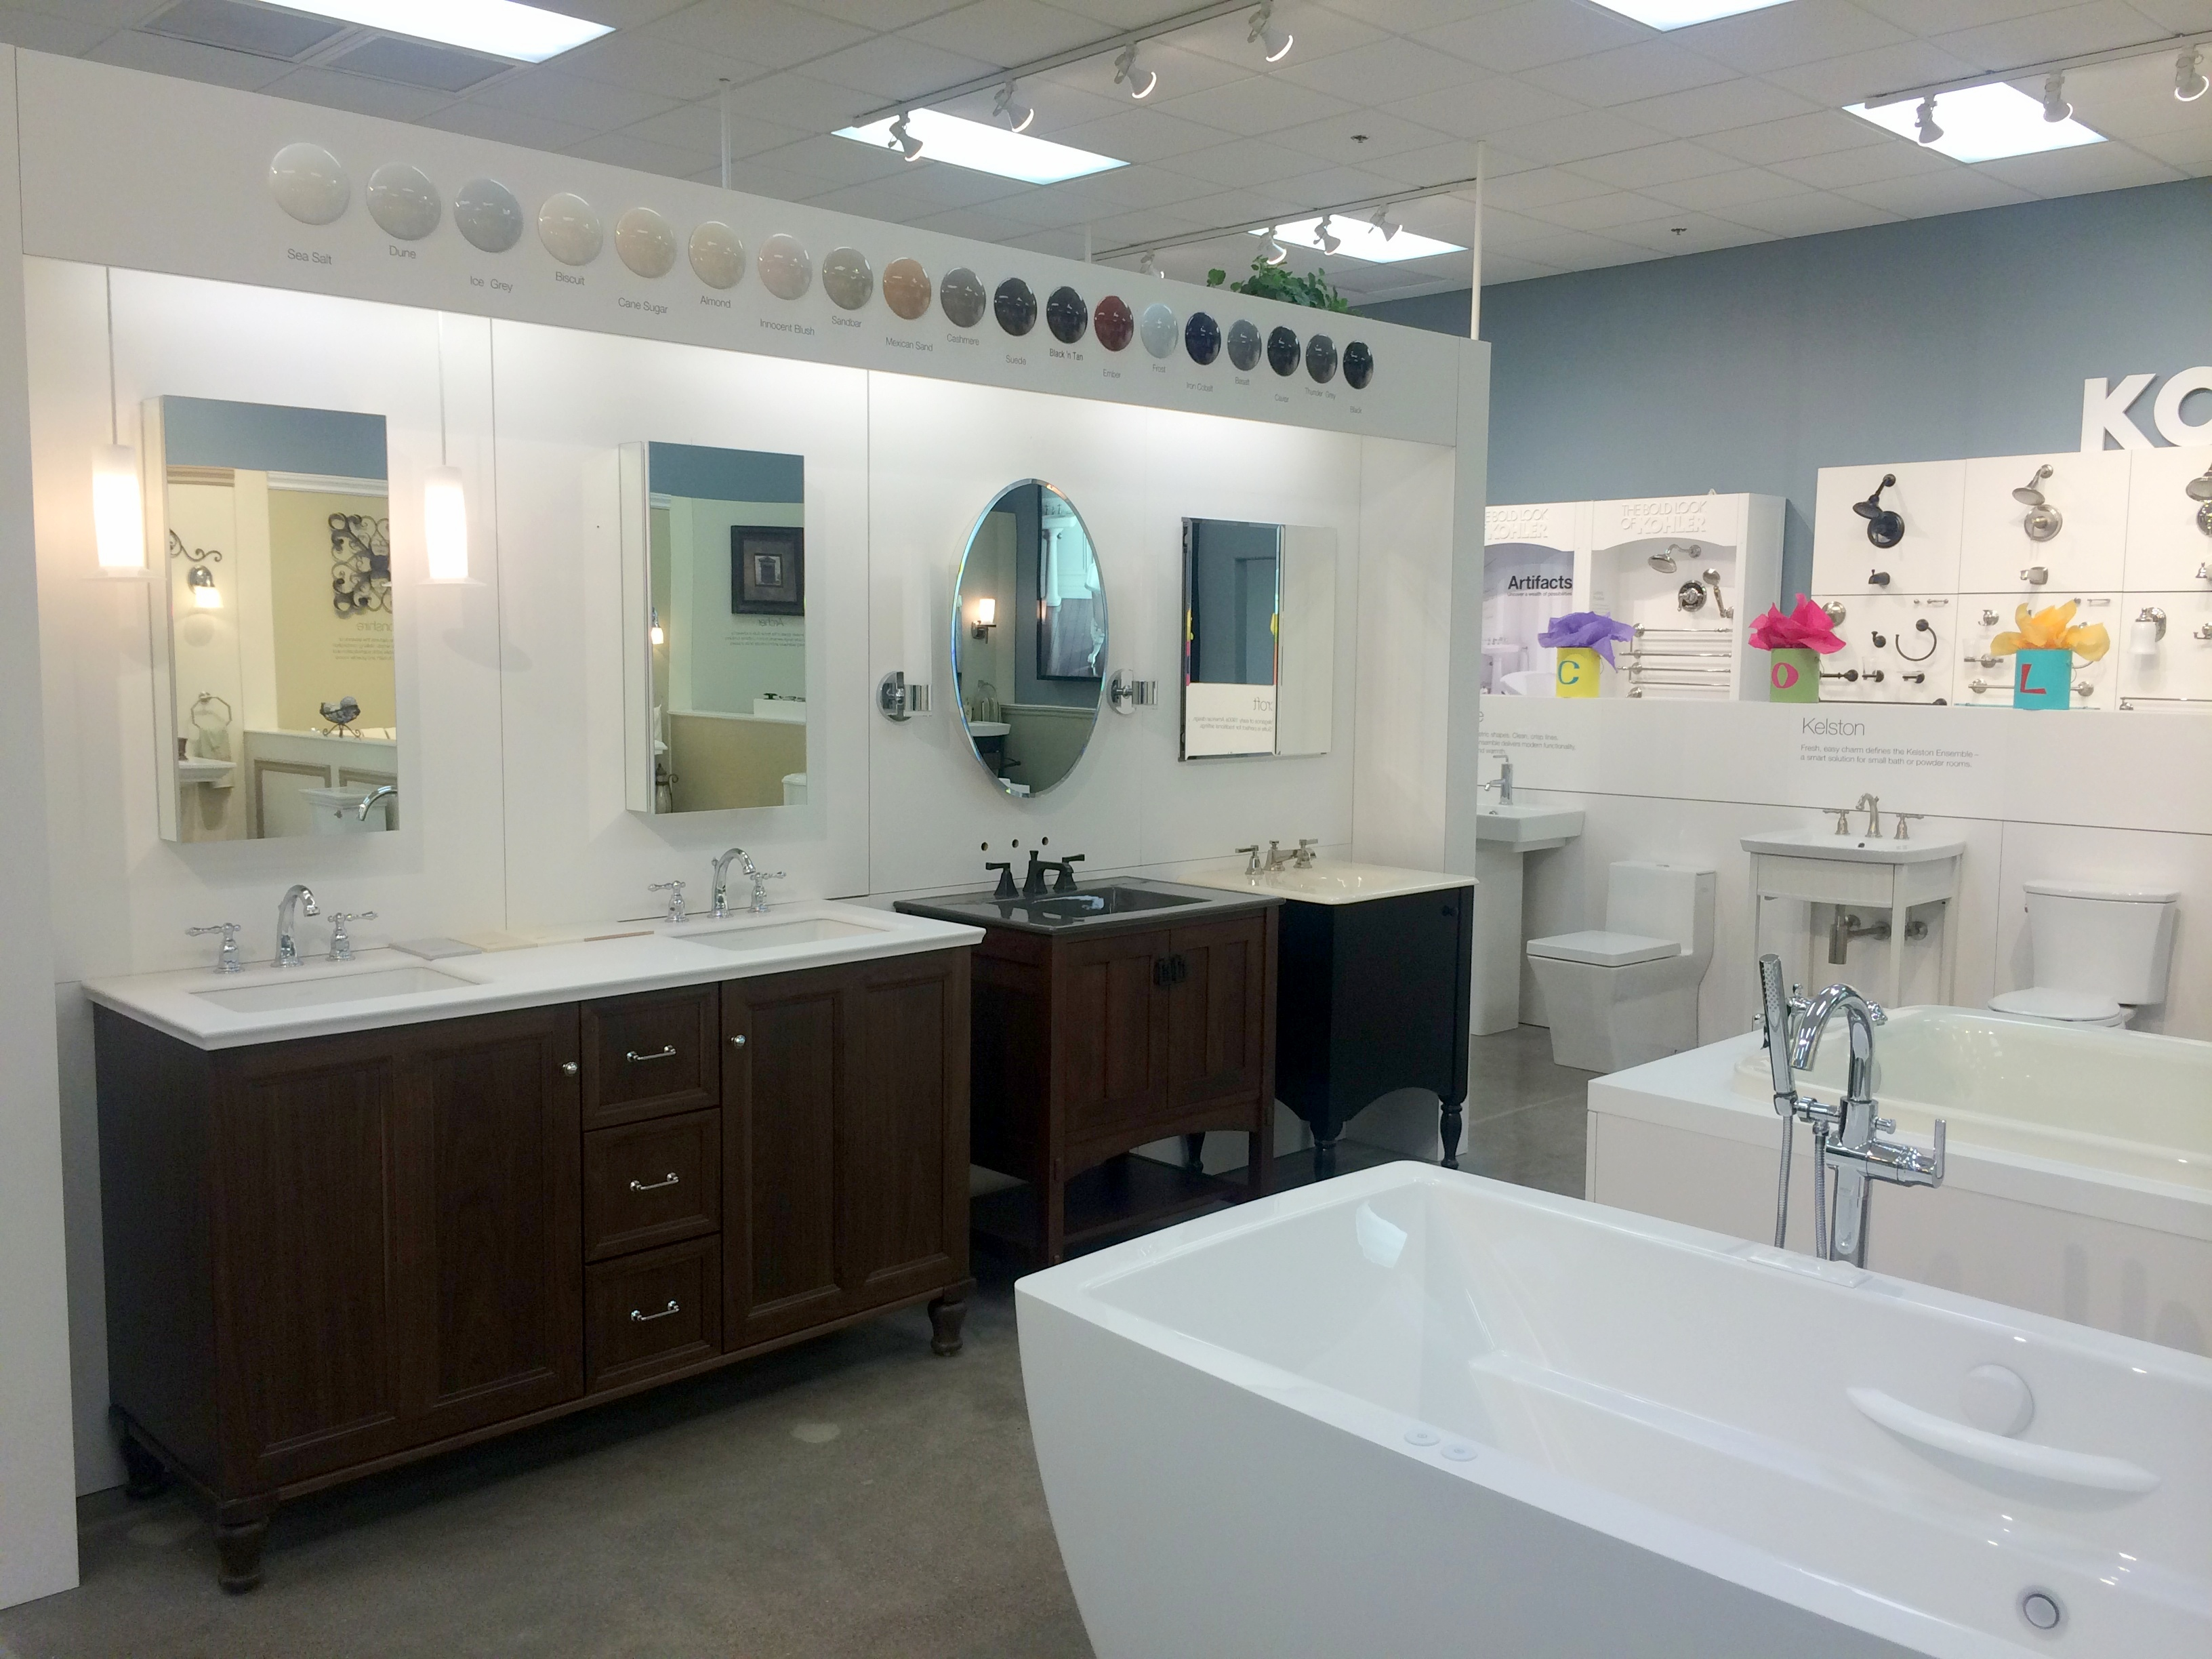 kohler bathroom kitchen products at expressions home gallery in